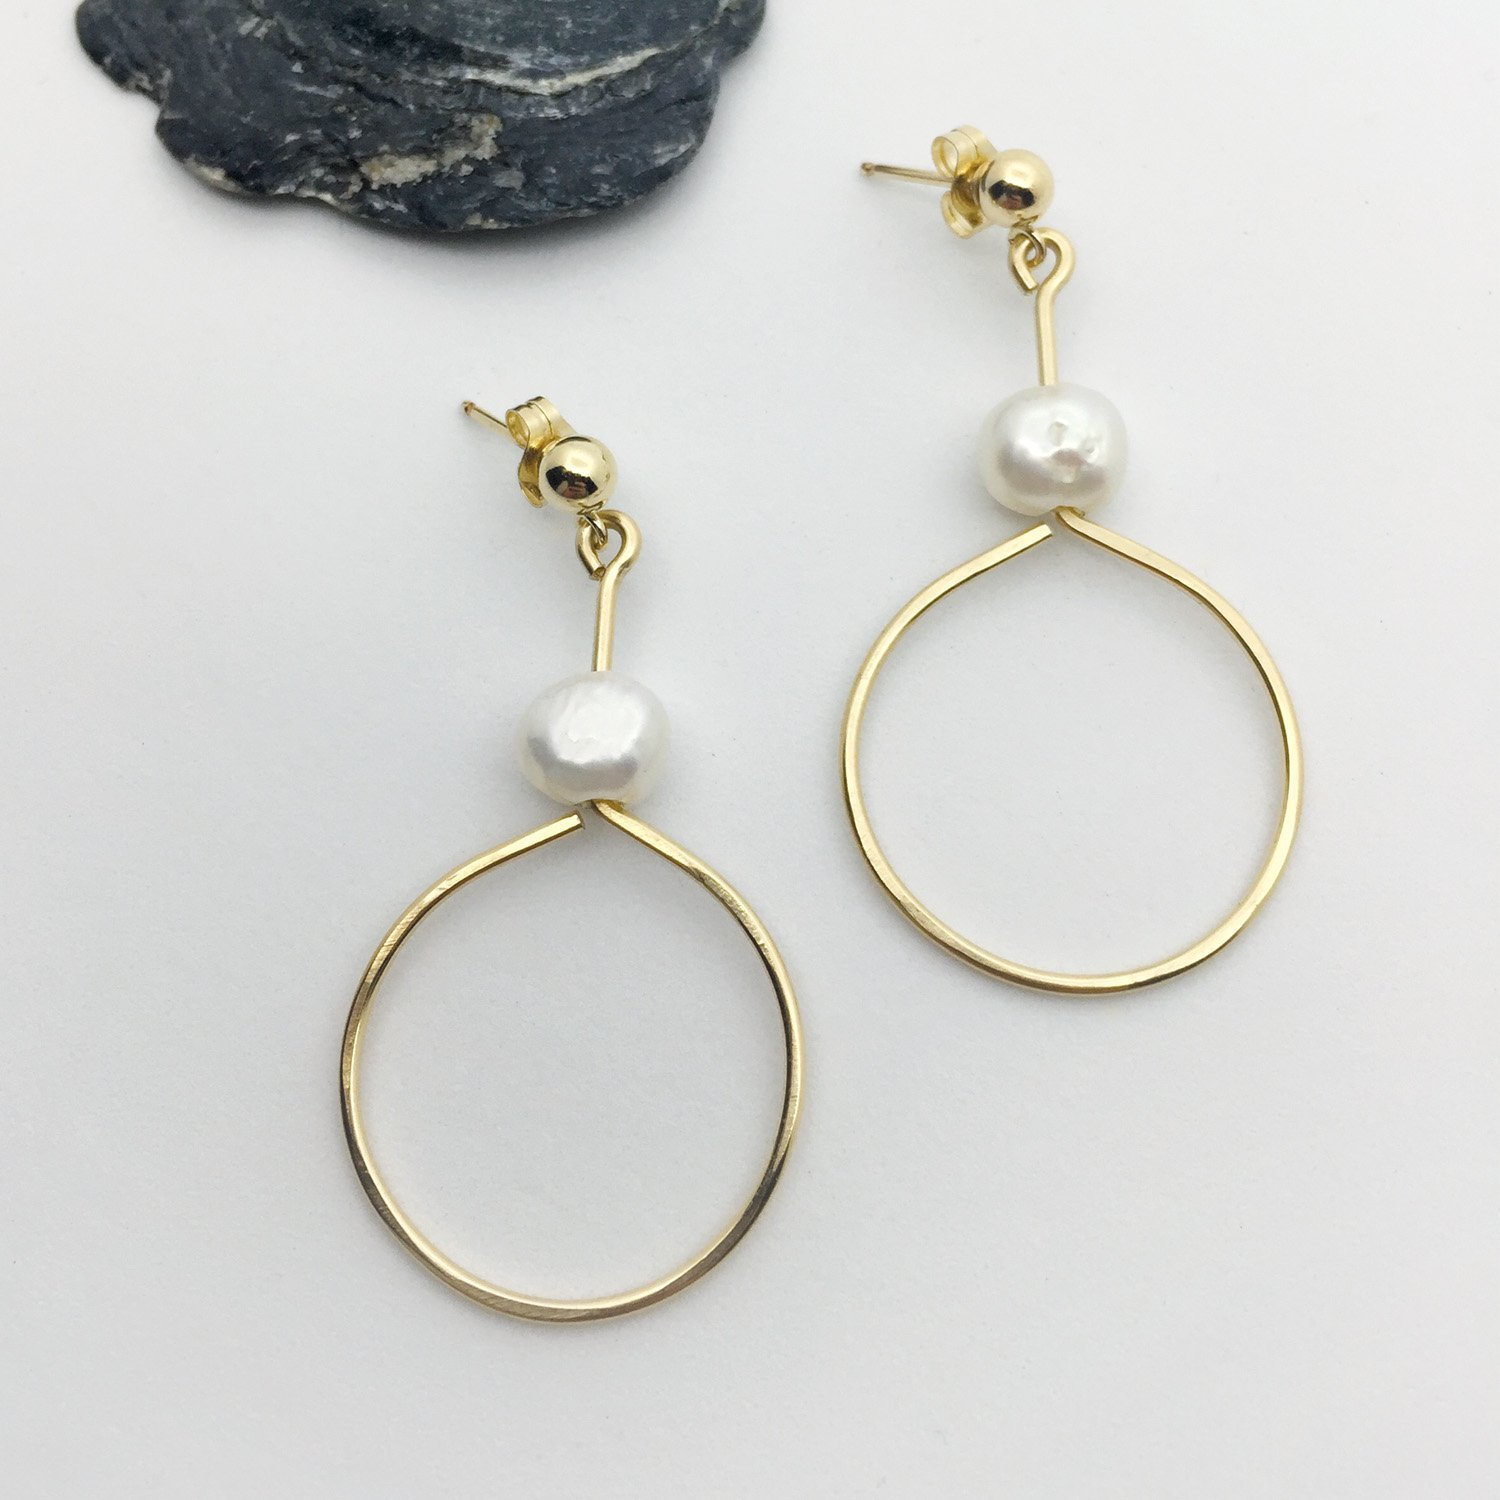 BOPBE PEARL EARRINGS